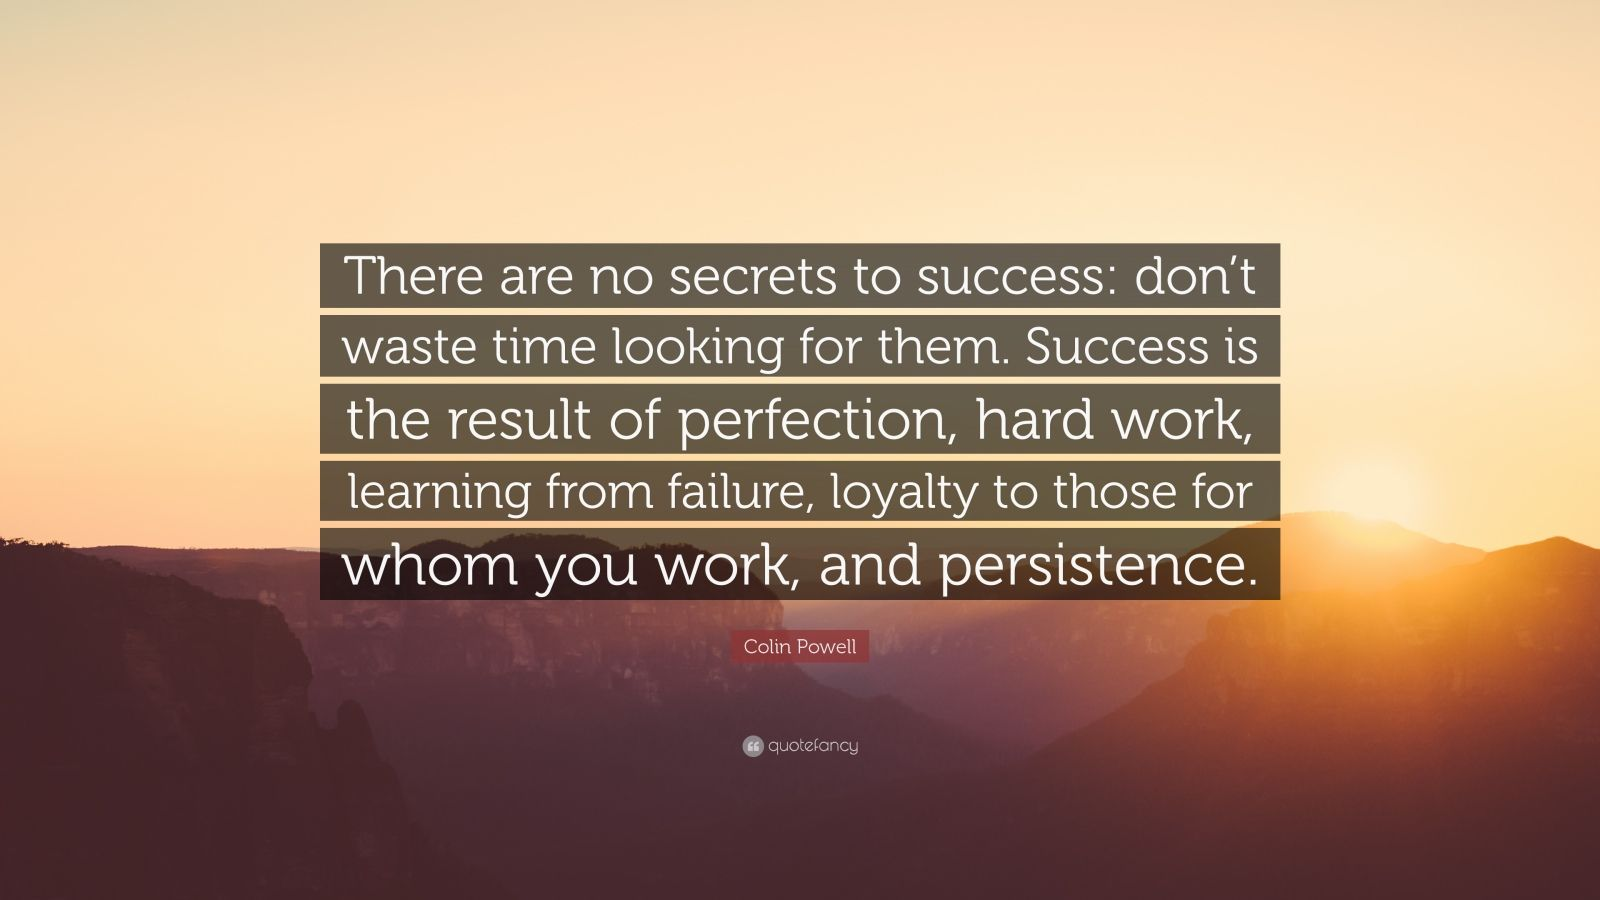 Persistence Quotes Wallpapers Colin Powell Quote There Are No Secrets To Success Don